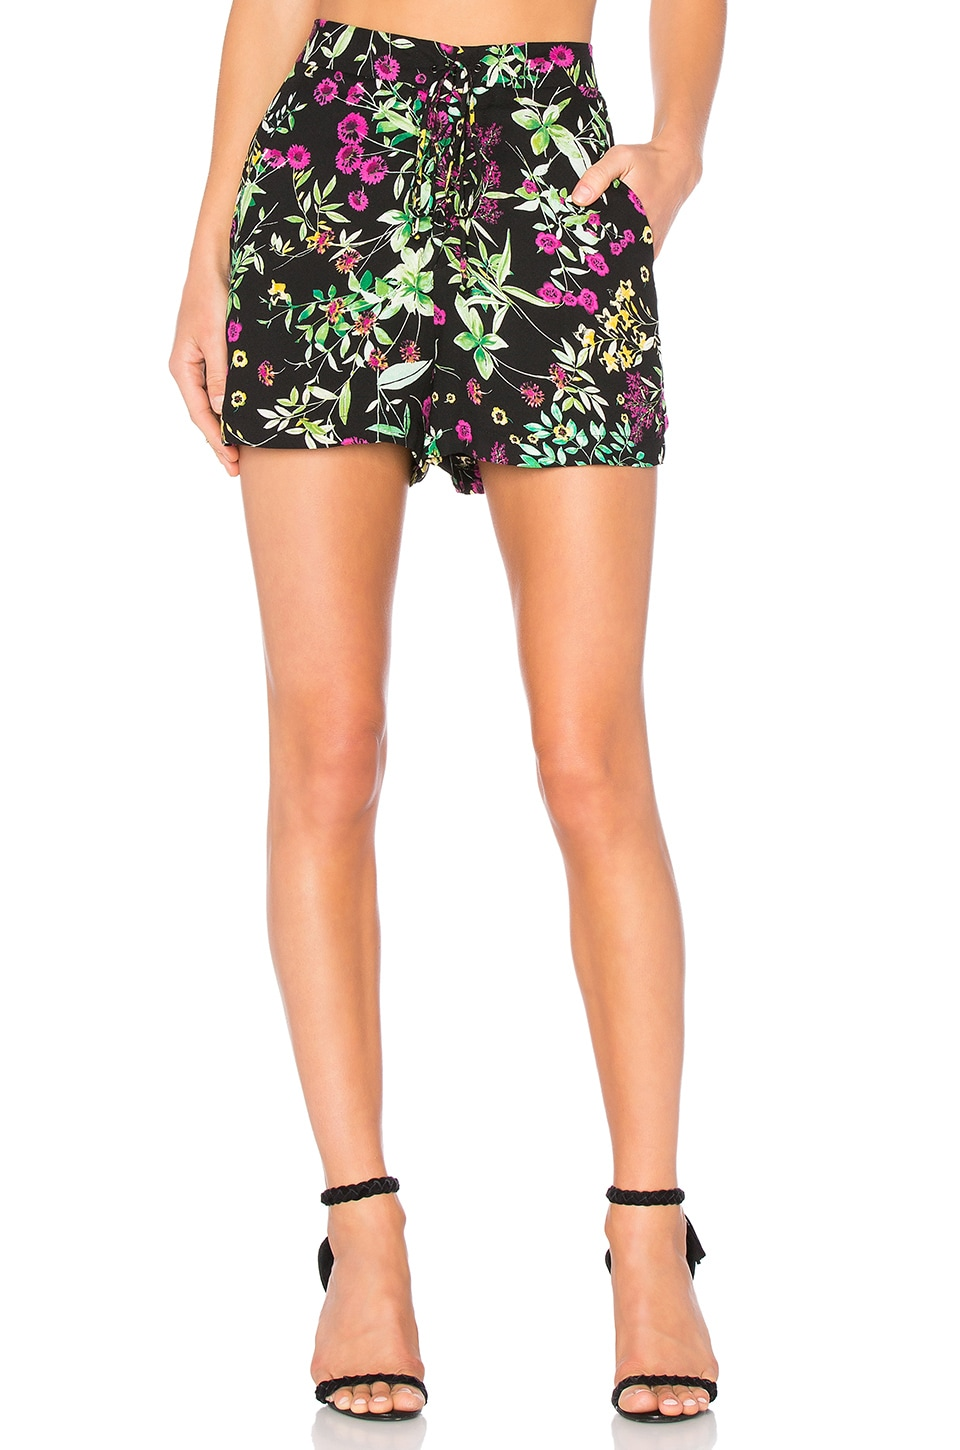 WAYF Lace Up Short in Black Floral